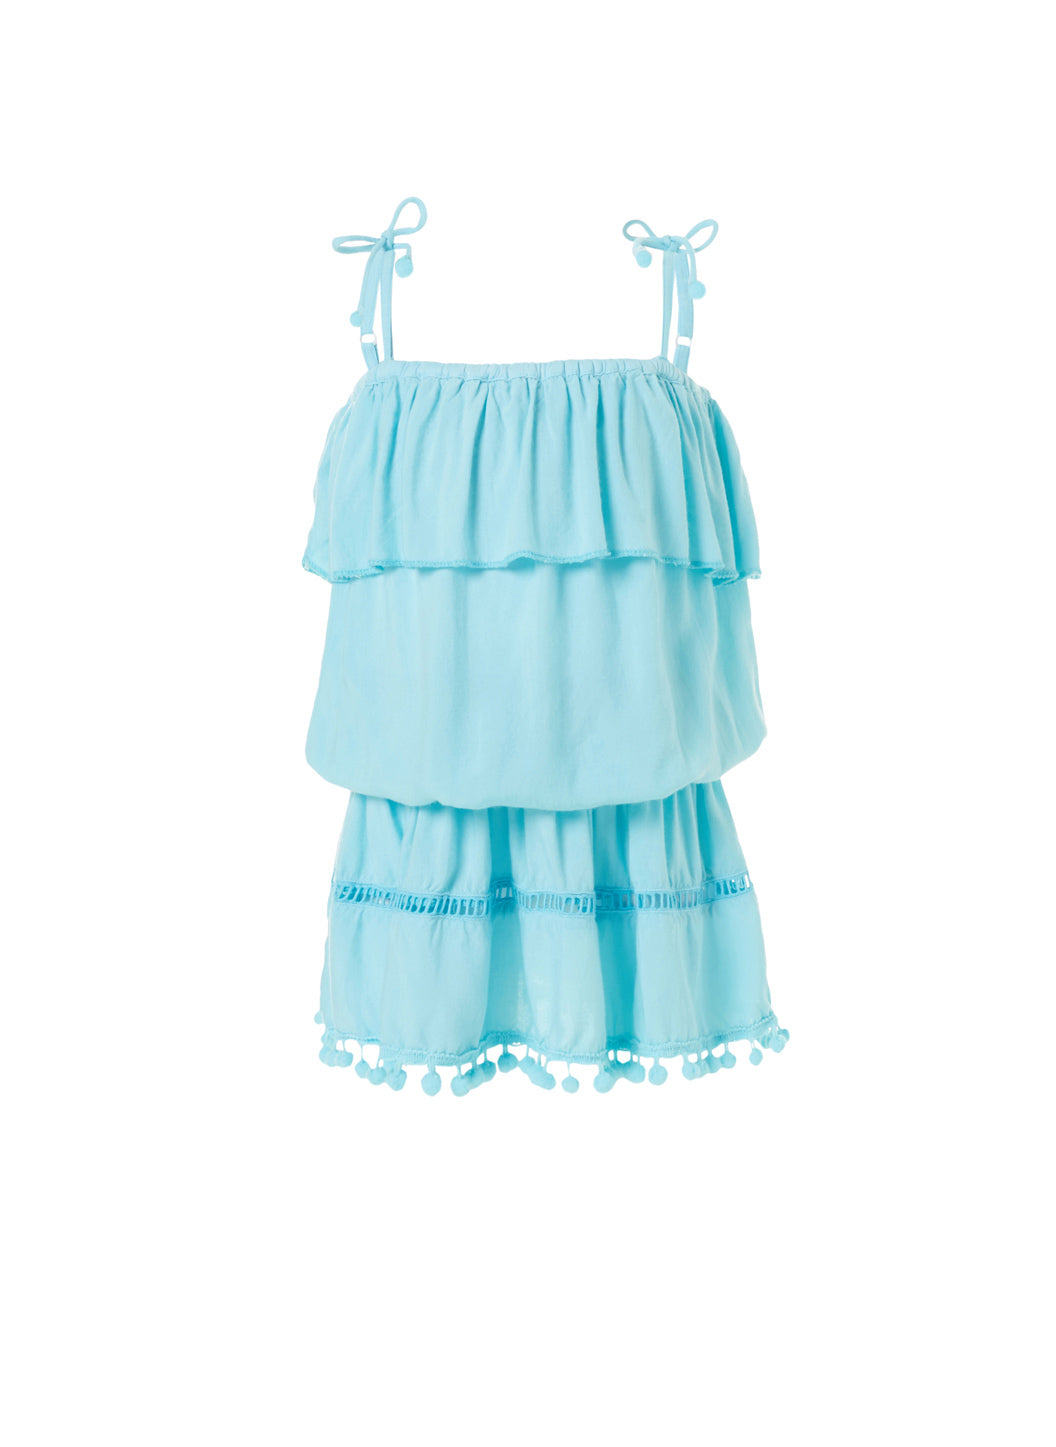 Baby Joy Sky Beach Dress